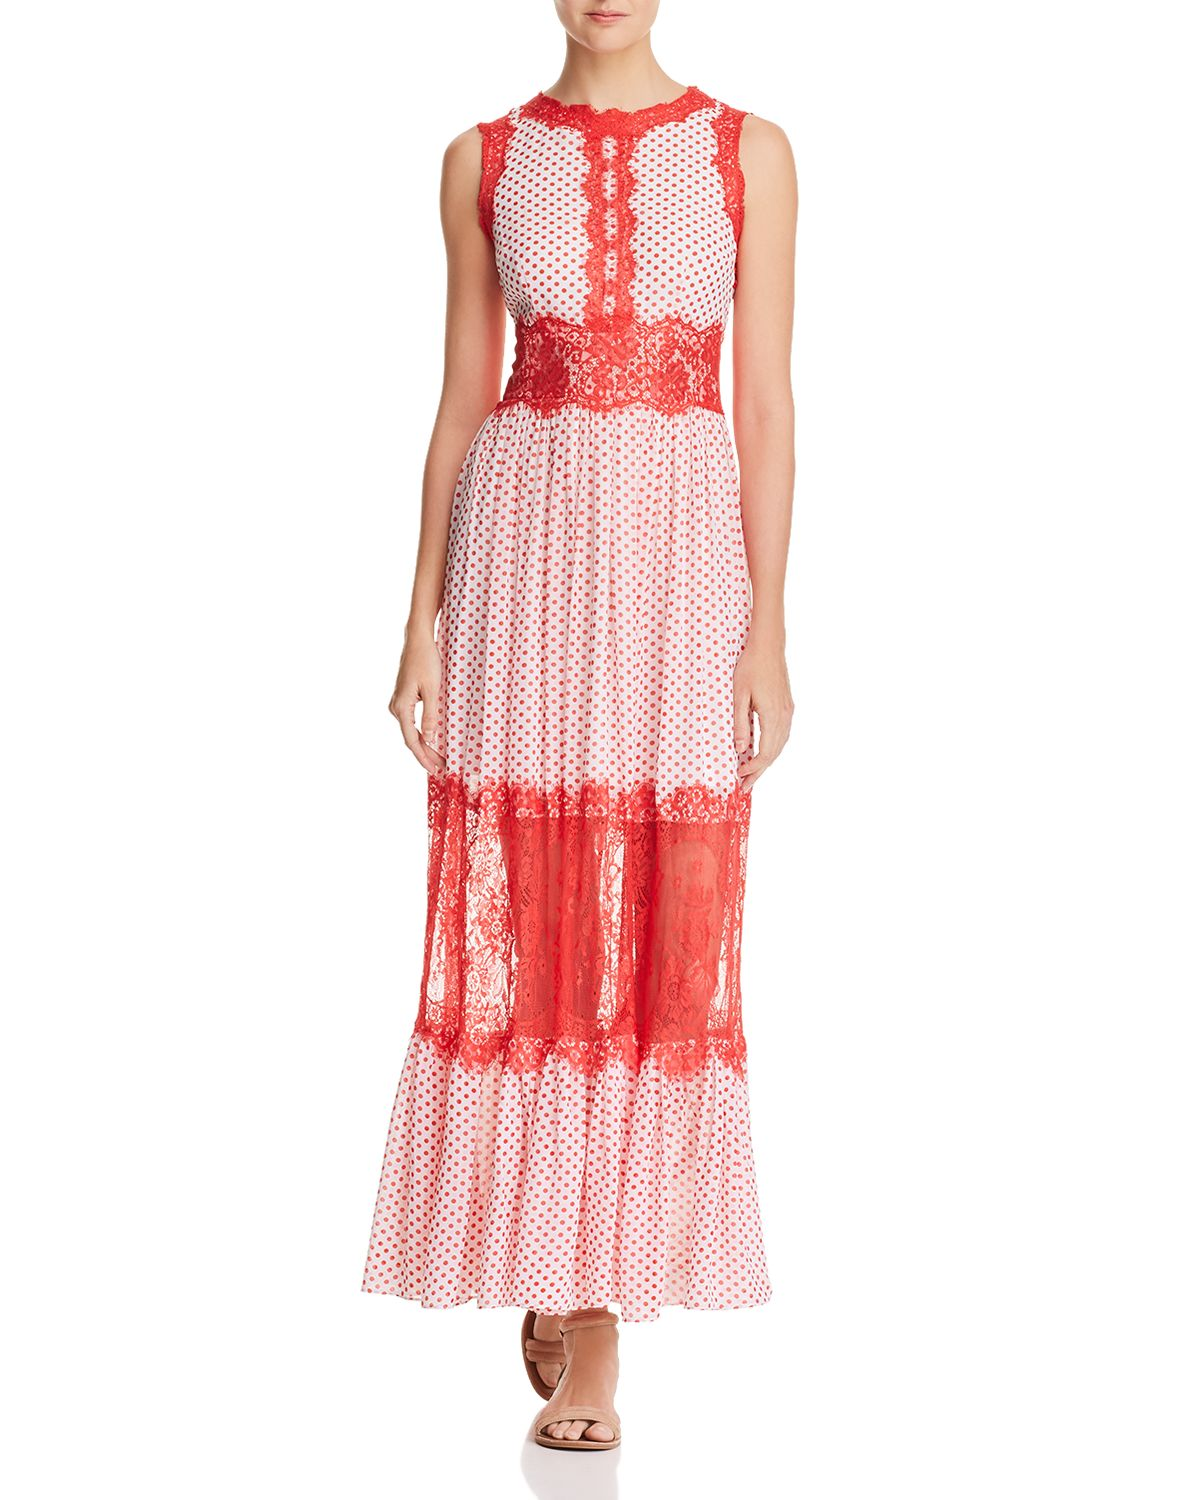 Lace Appliqué Polka Dot Maxi Dress   100 Percents Exclusive by Aqua